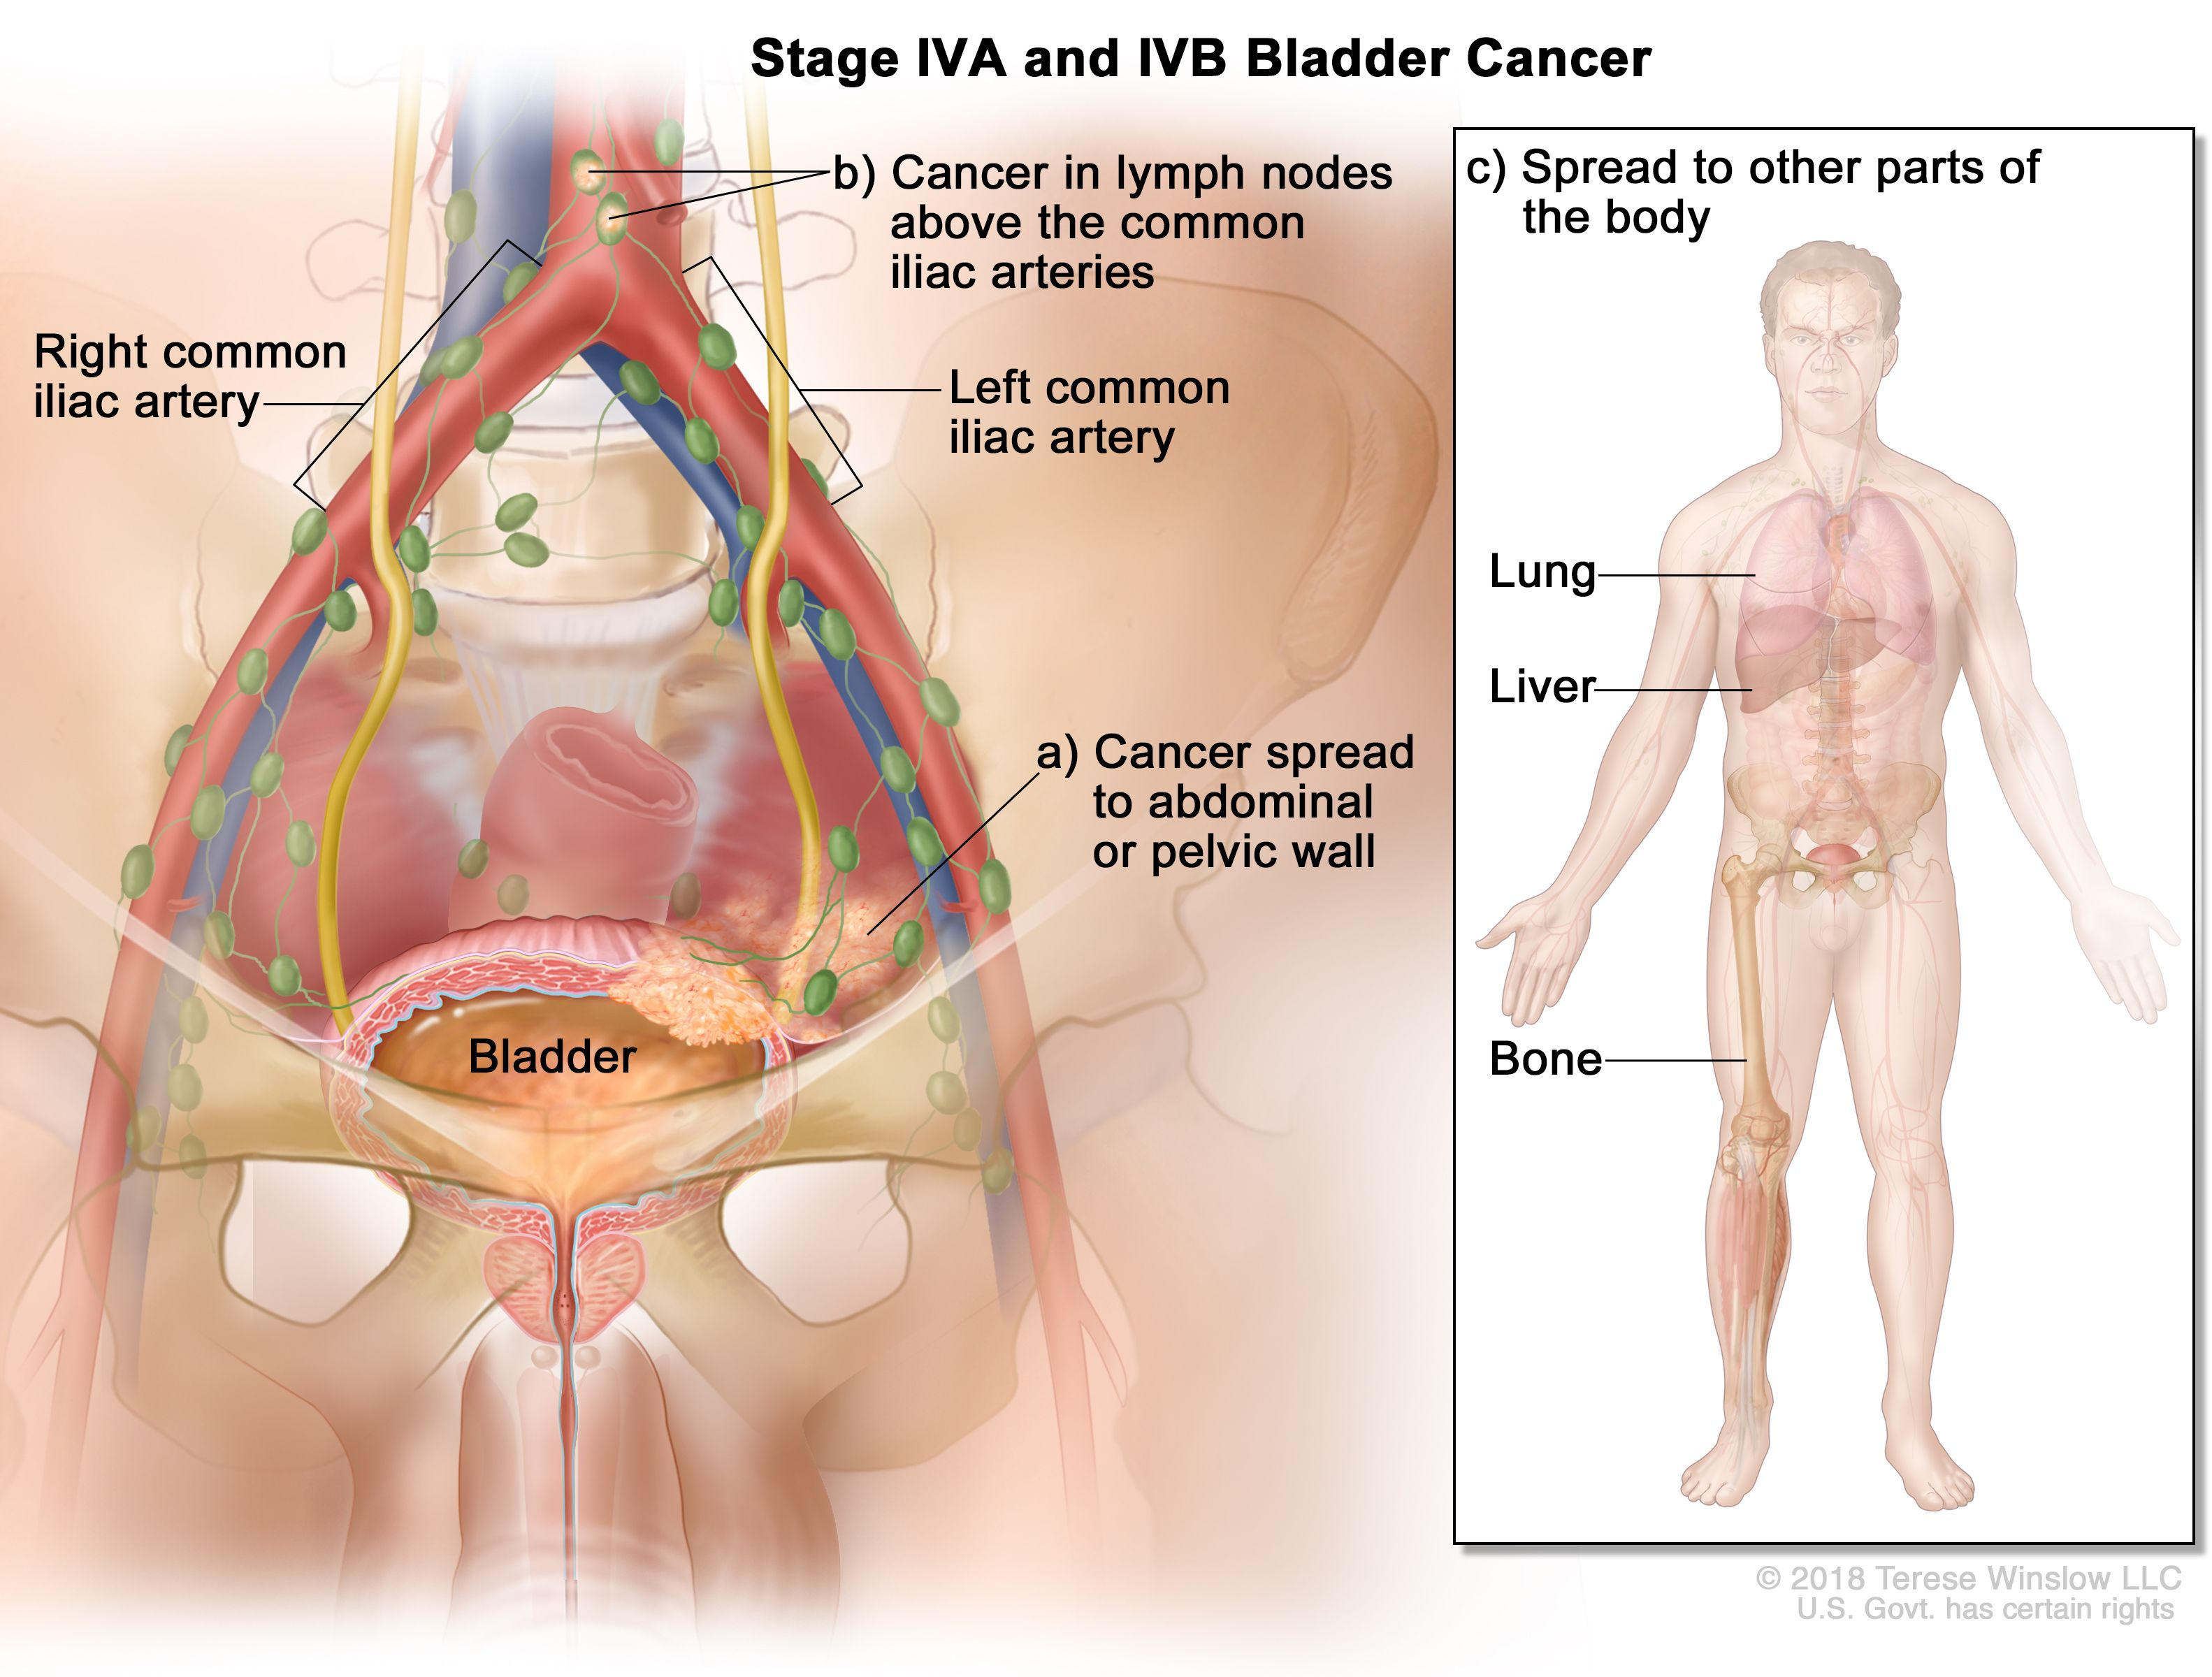 Bladder Cancer Treatment Bladder Cancer Pictures Signs Symptoms To Better Understand Diagnosis Cleveland Oh University Hospitals